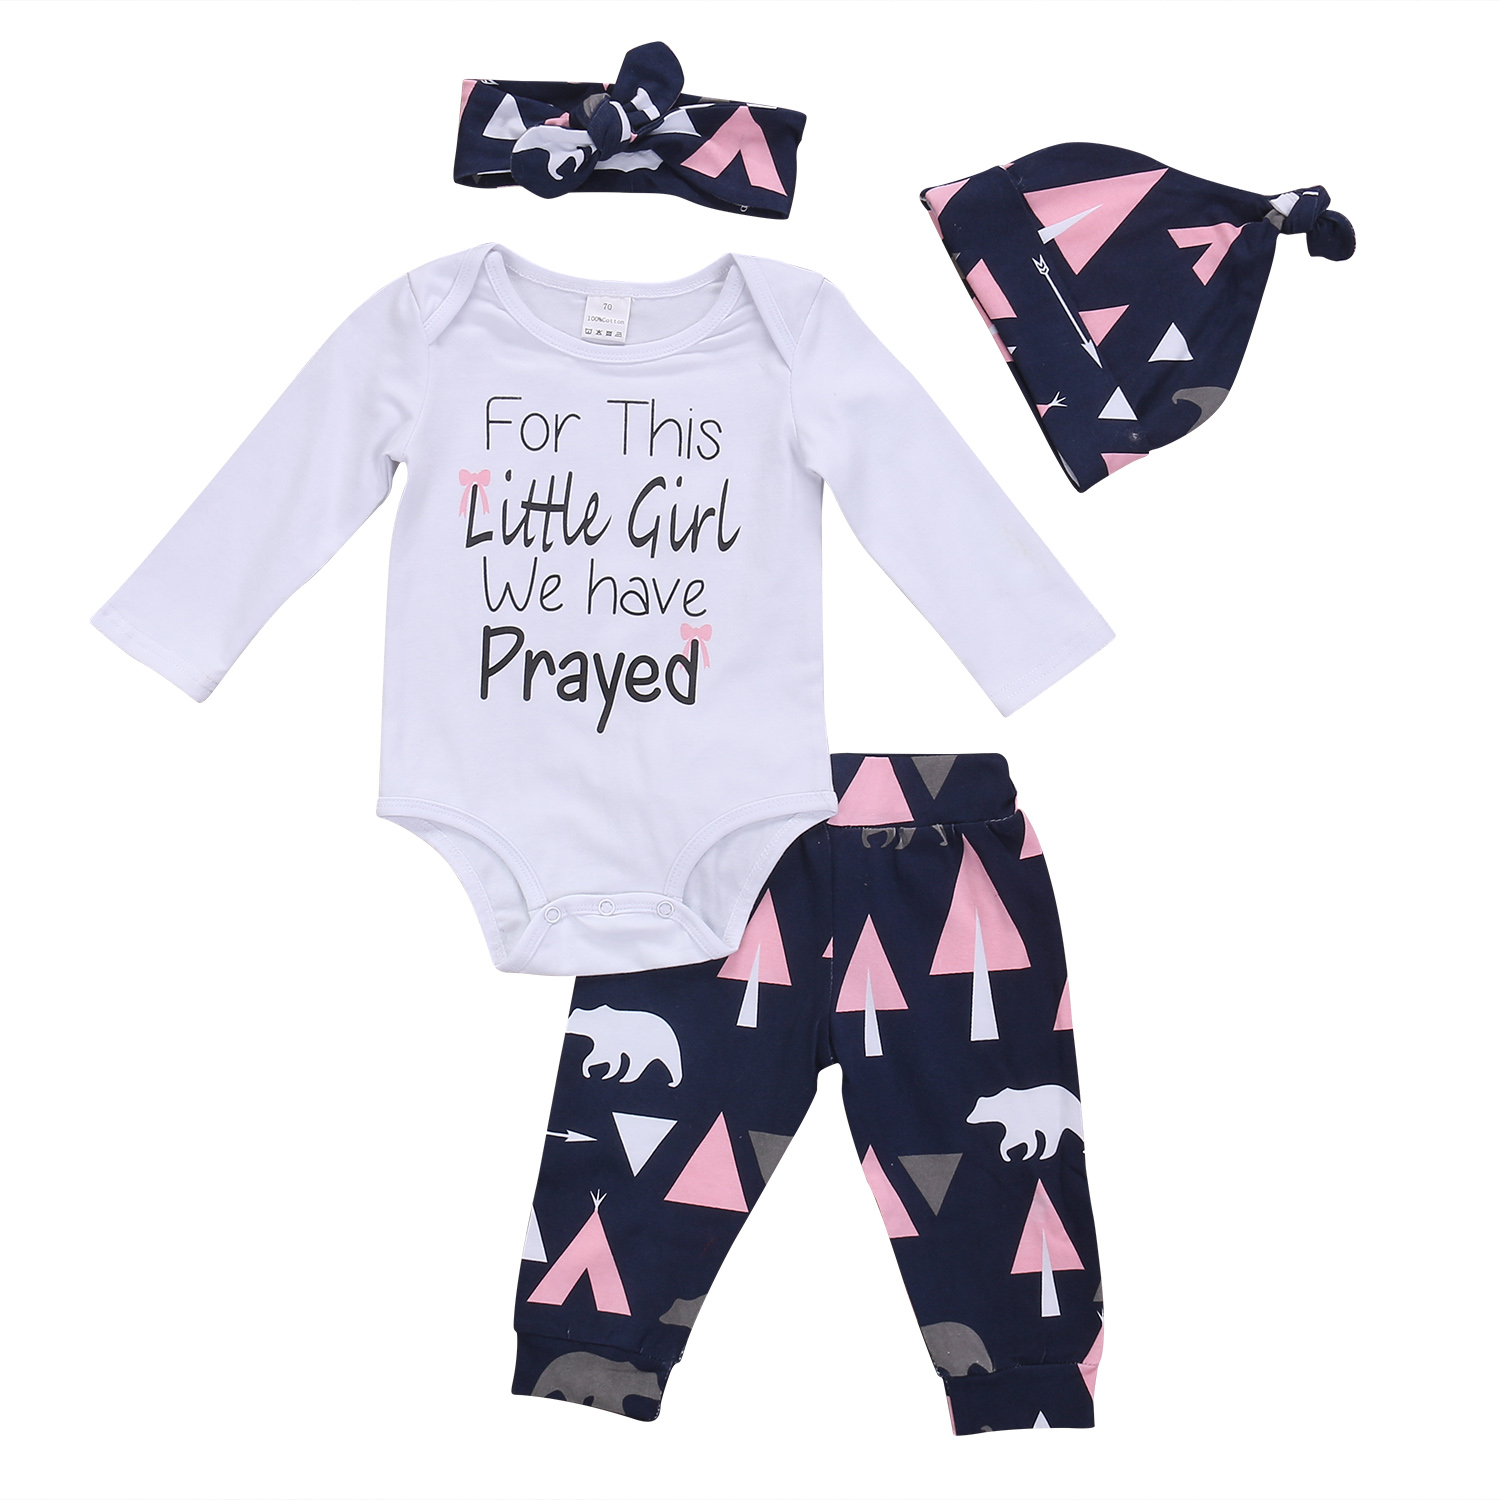 Pudcoco 4Pcs Newborn Cute Baby Girls Clothes Set Long Sleeve Cotton Tops Romper Pants Hat Outfits Set Clothing